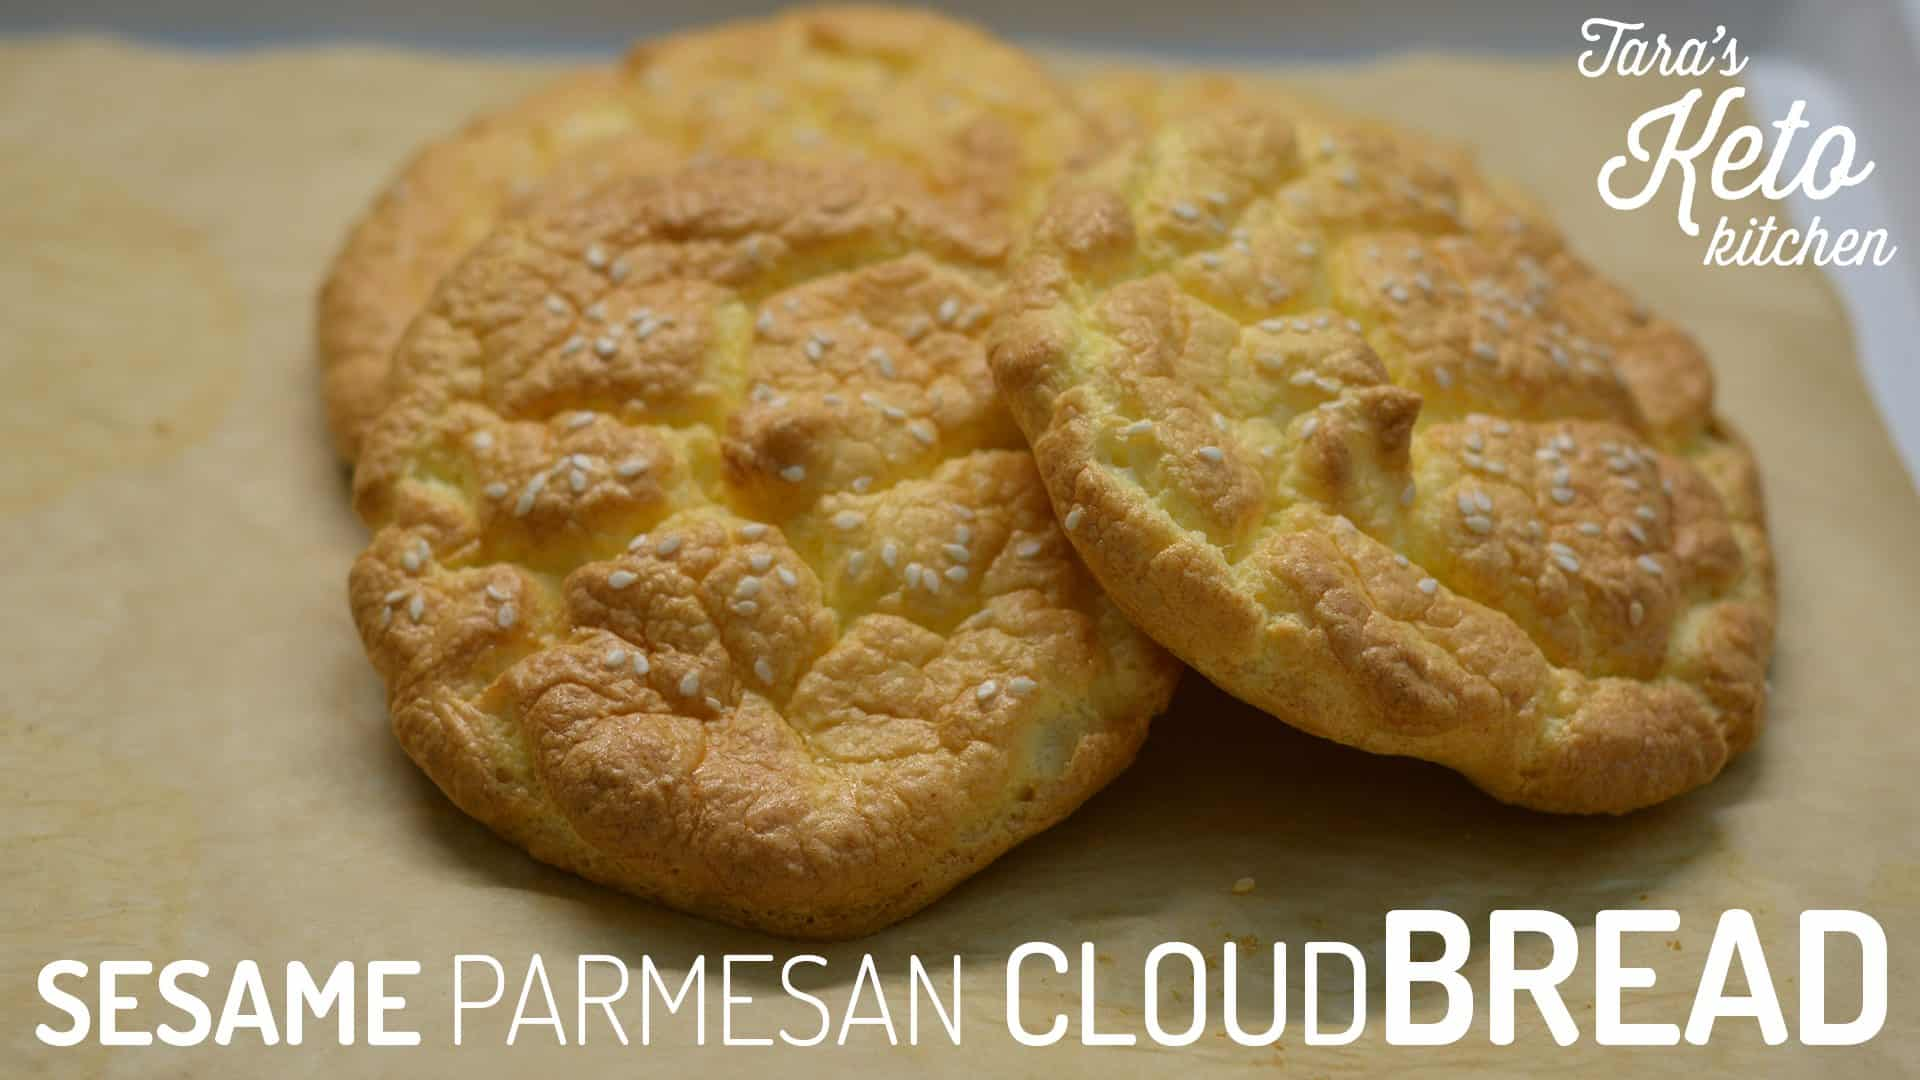 keto cloud bread